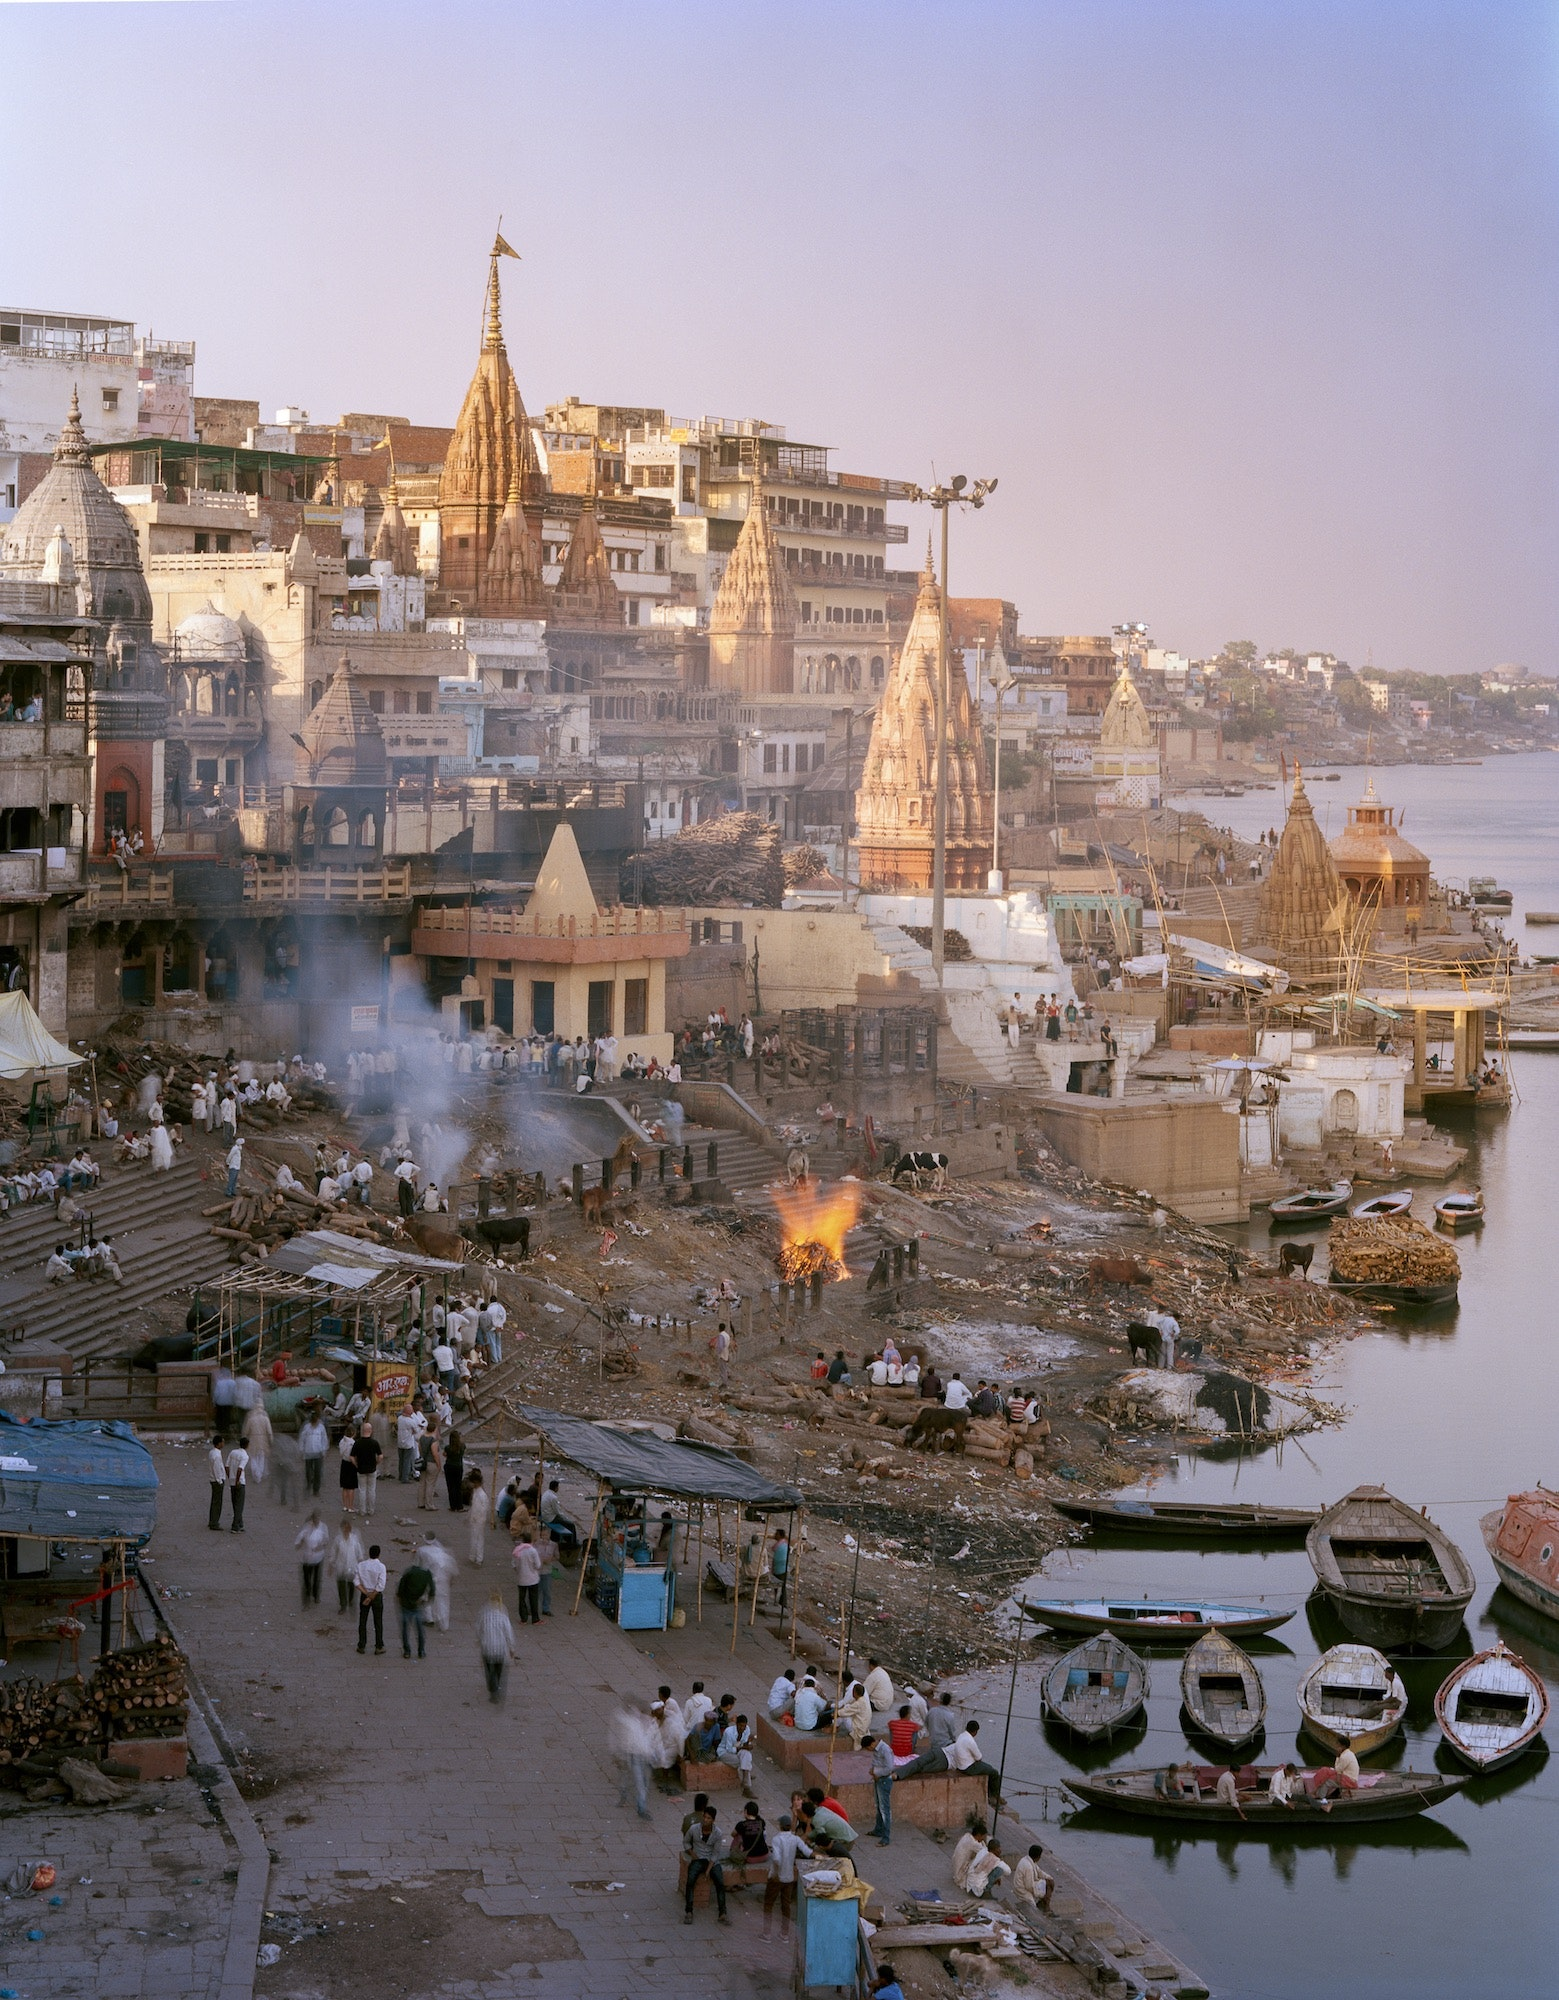 One of the oldest and most revered of Varanasi's ghats, Manikarnika ghat is the prime site for Hindu cremations on the Ganges.